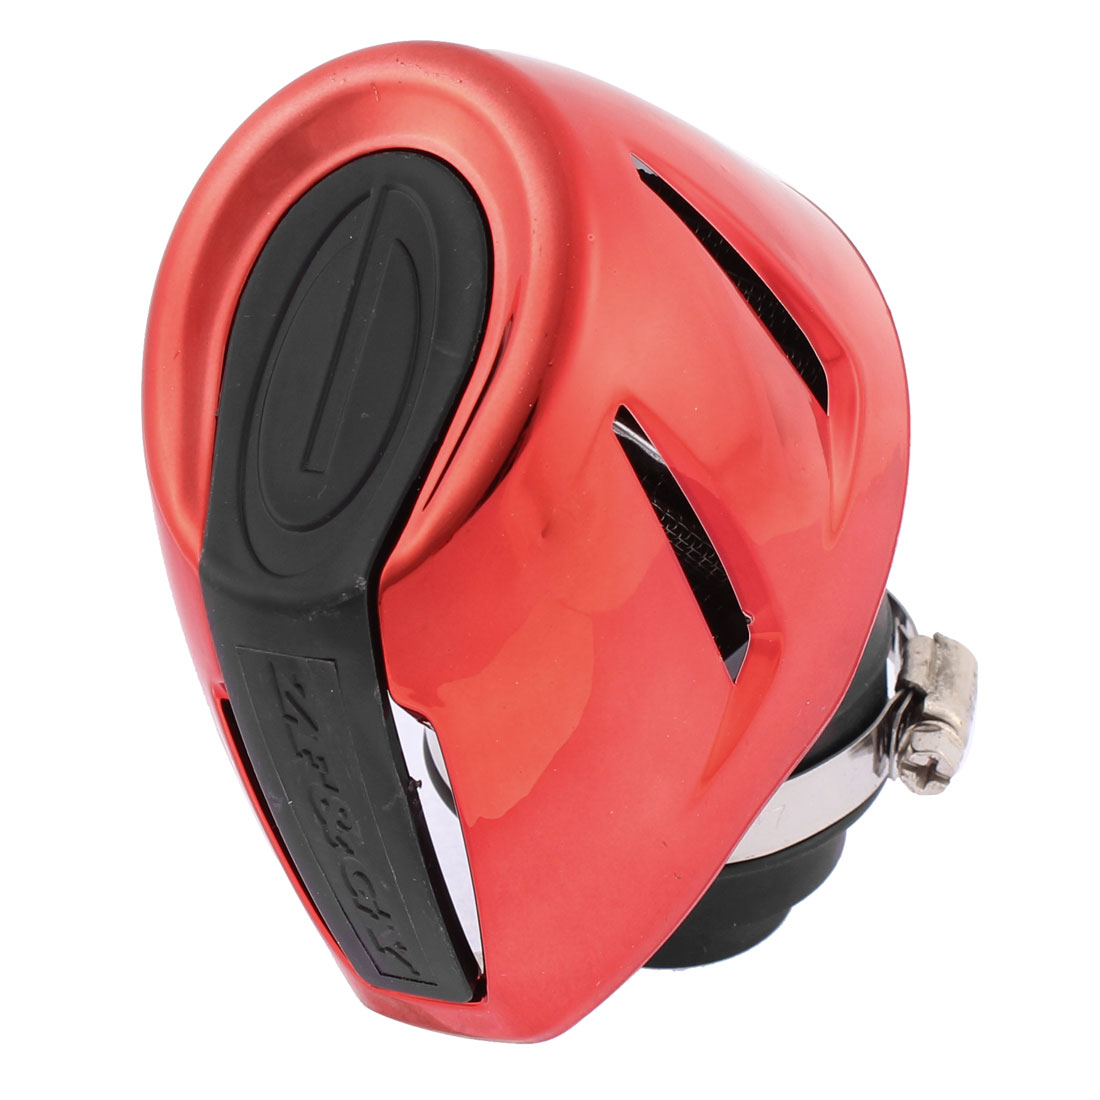 Unique Bargains Universal Red Black Rubber Plastic Motorcycle Air Filter Cleaner 48mm Thread Dia